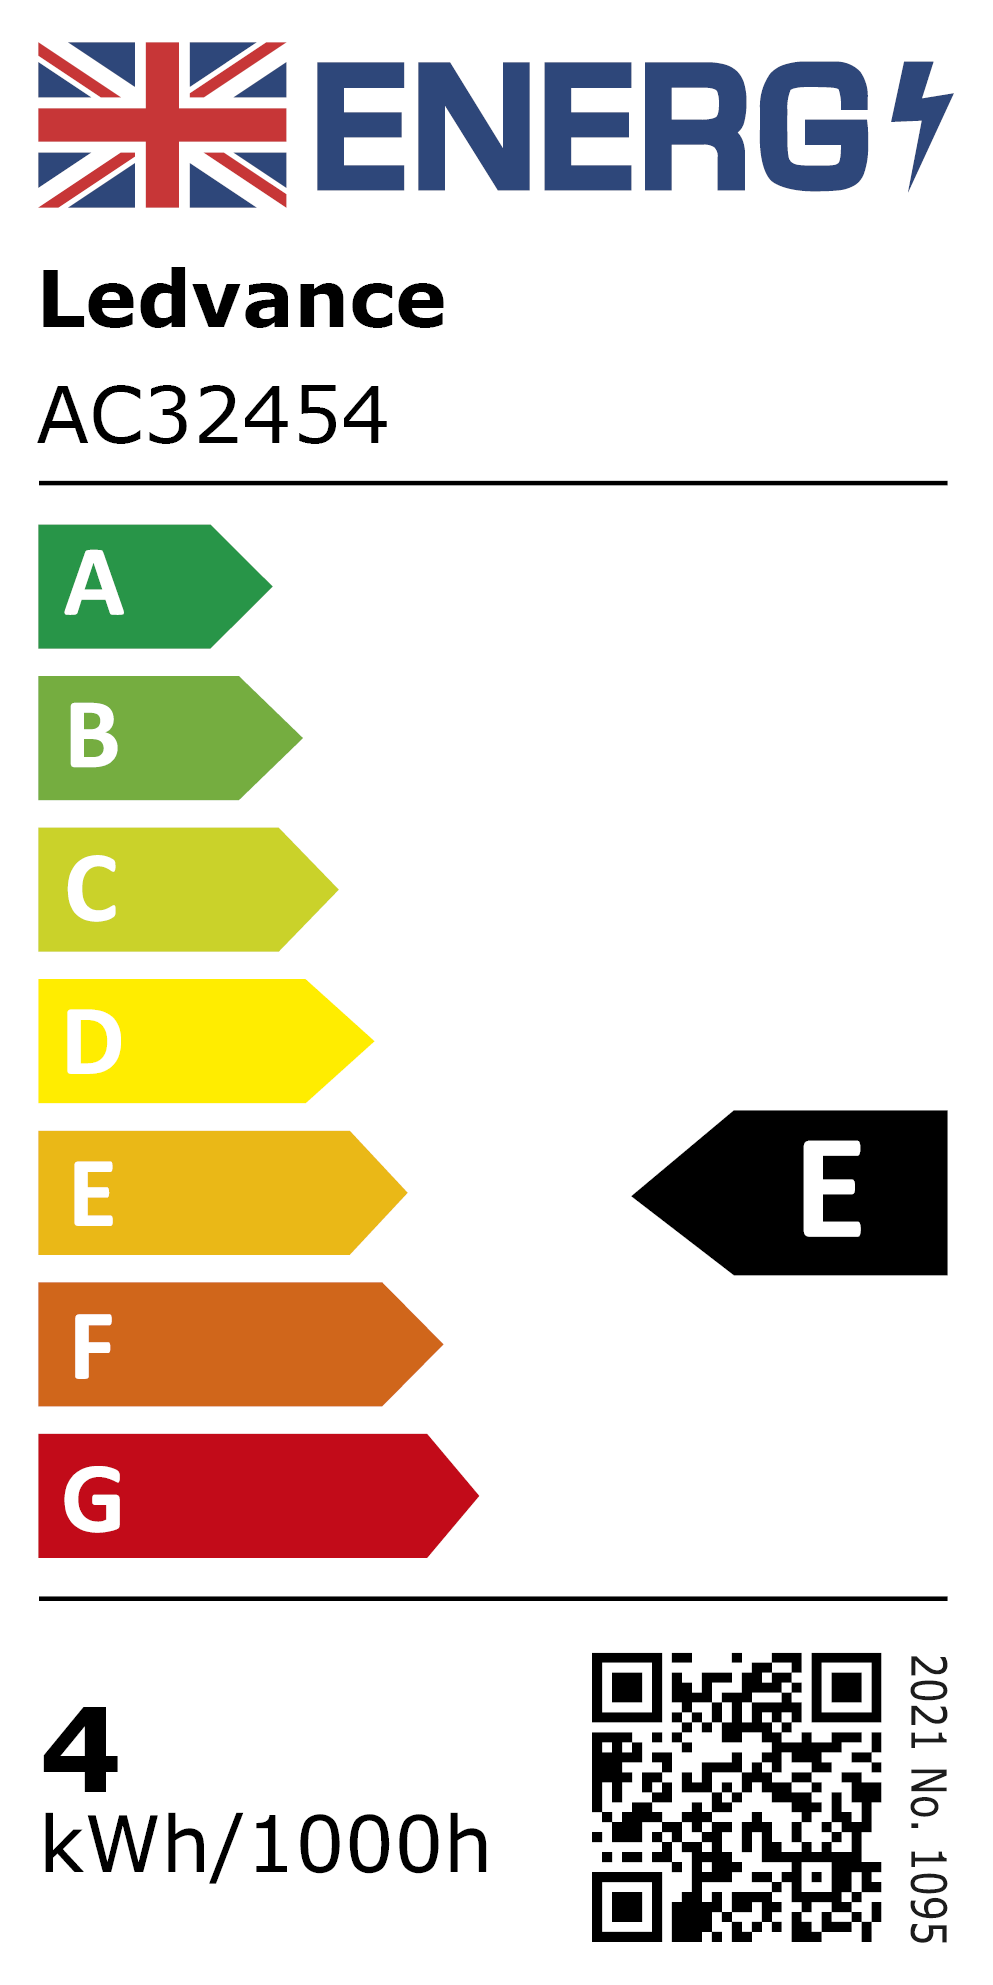 New 2021 Energy Rating Label: MPN AC32454